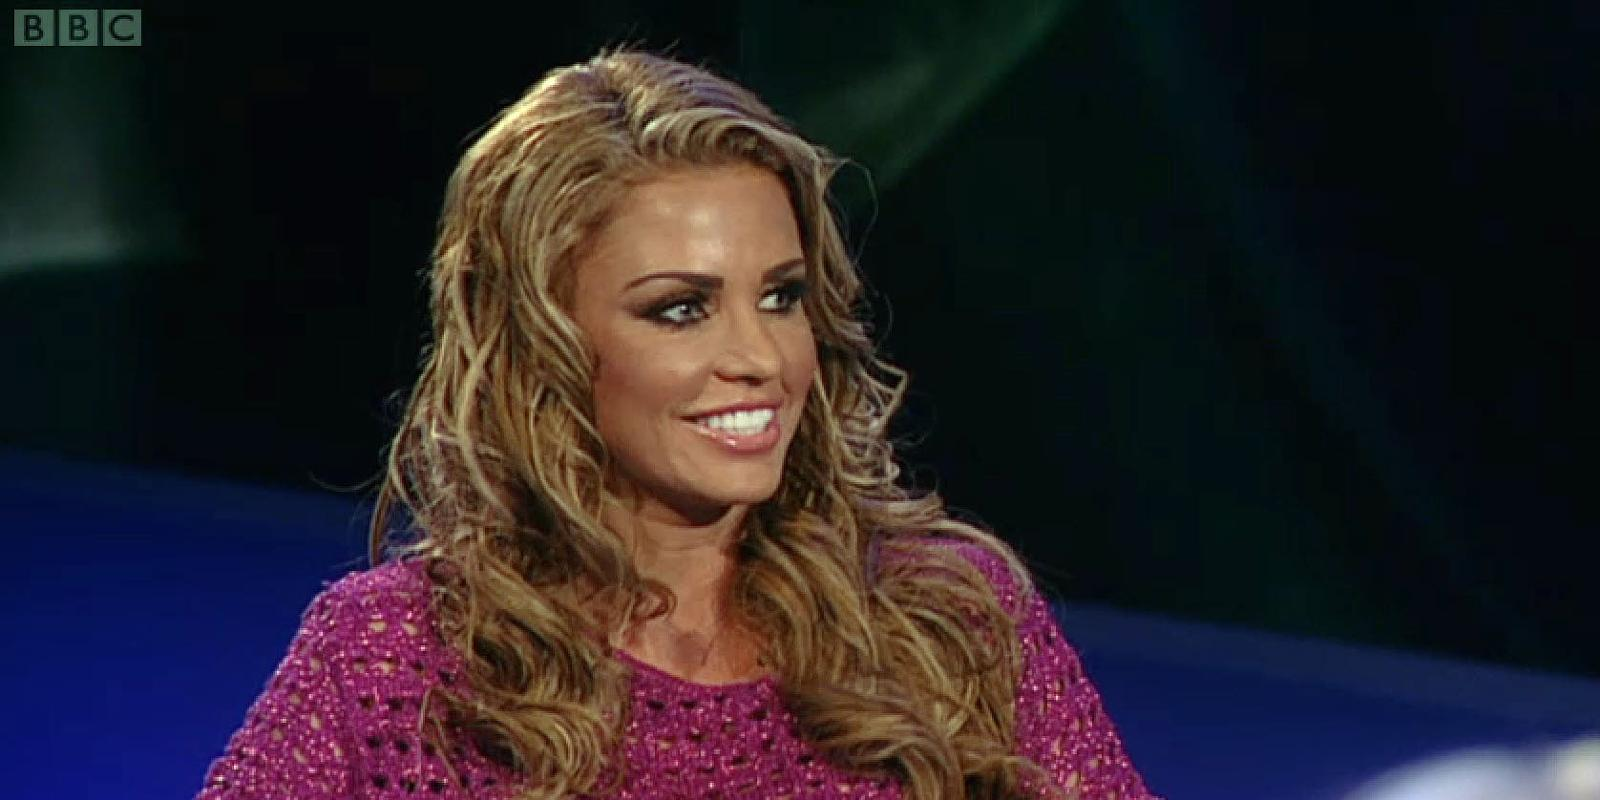 Katie Price Boob Job Age Limit Should Be Increased From